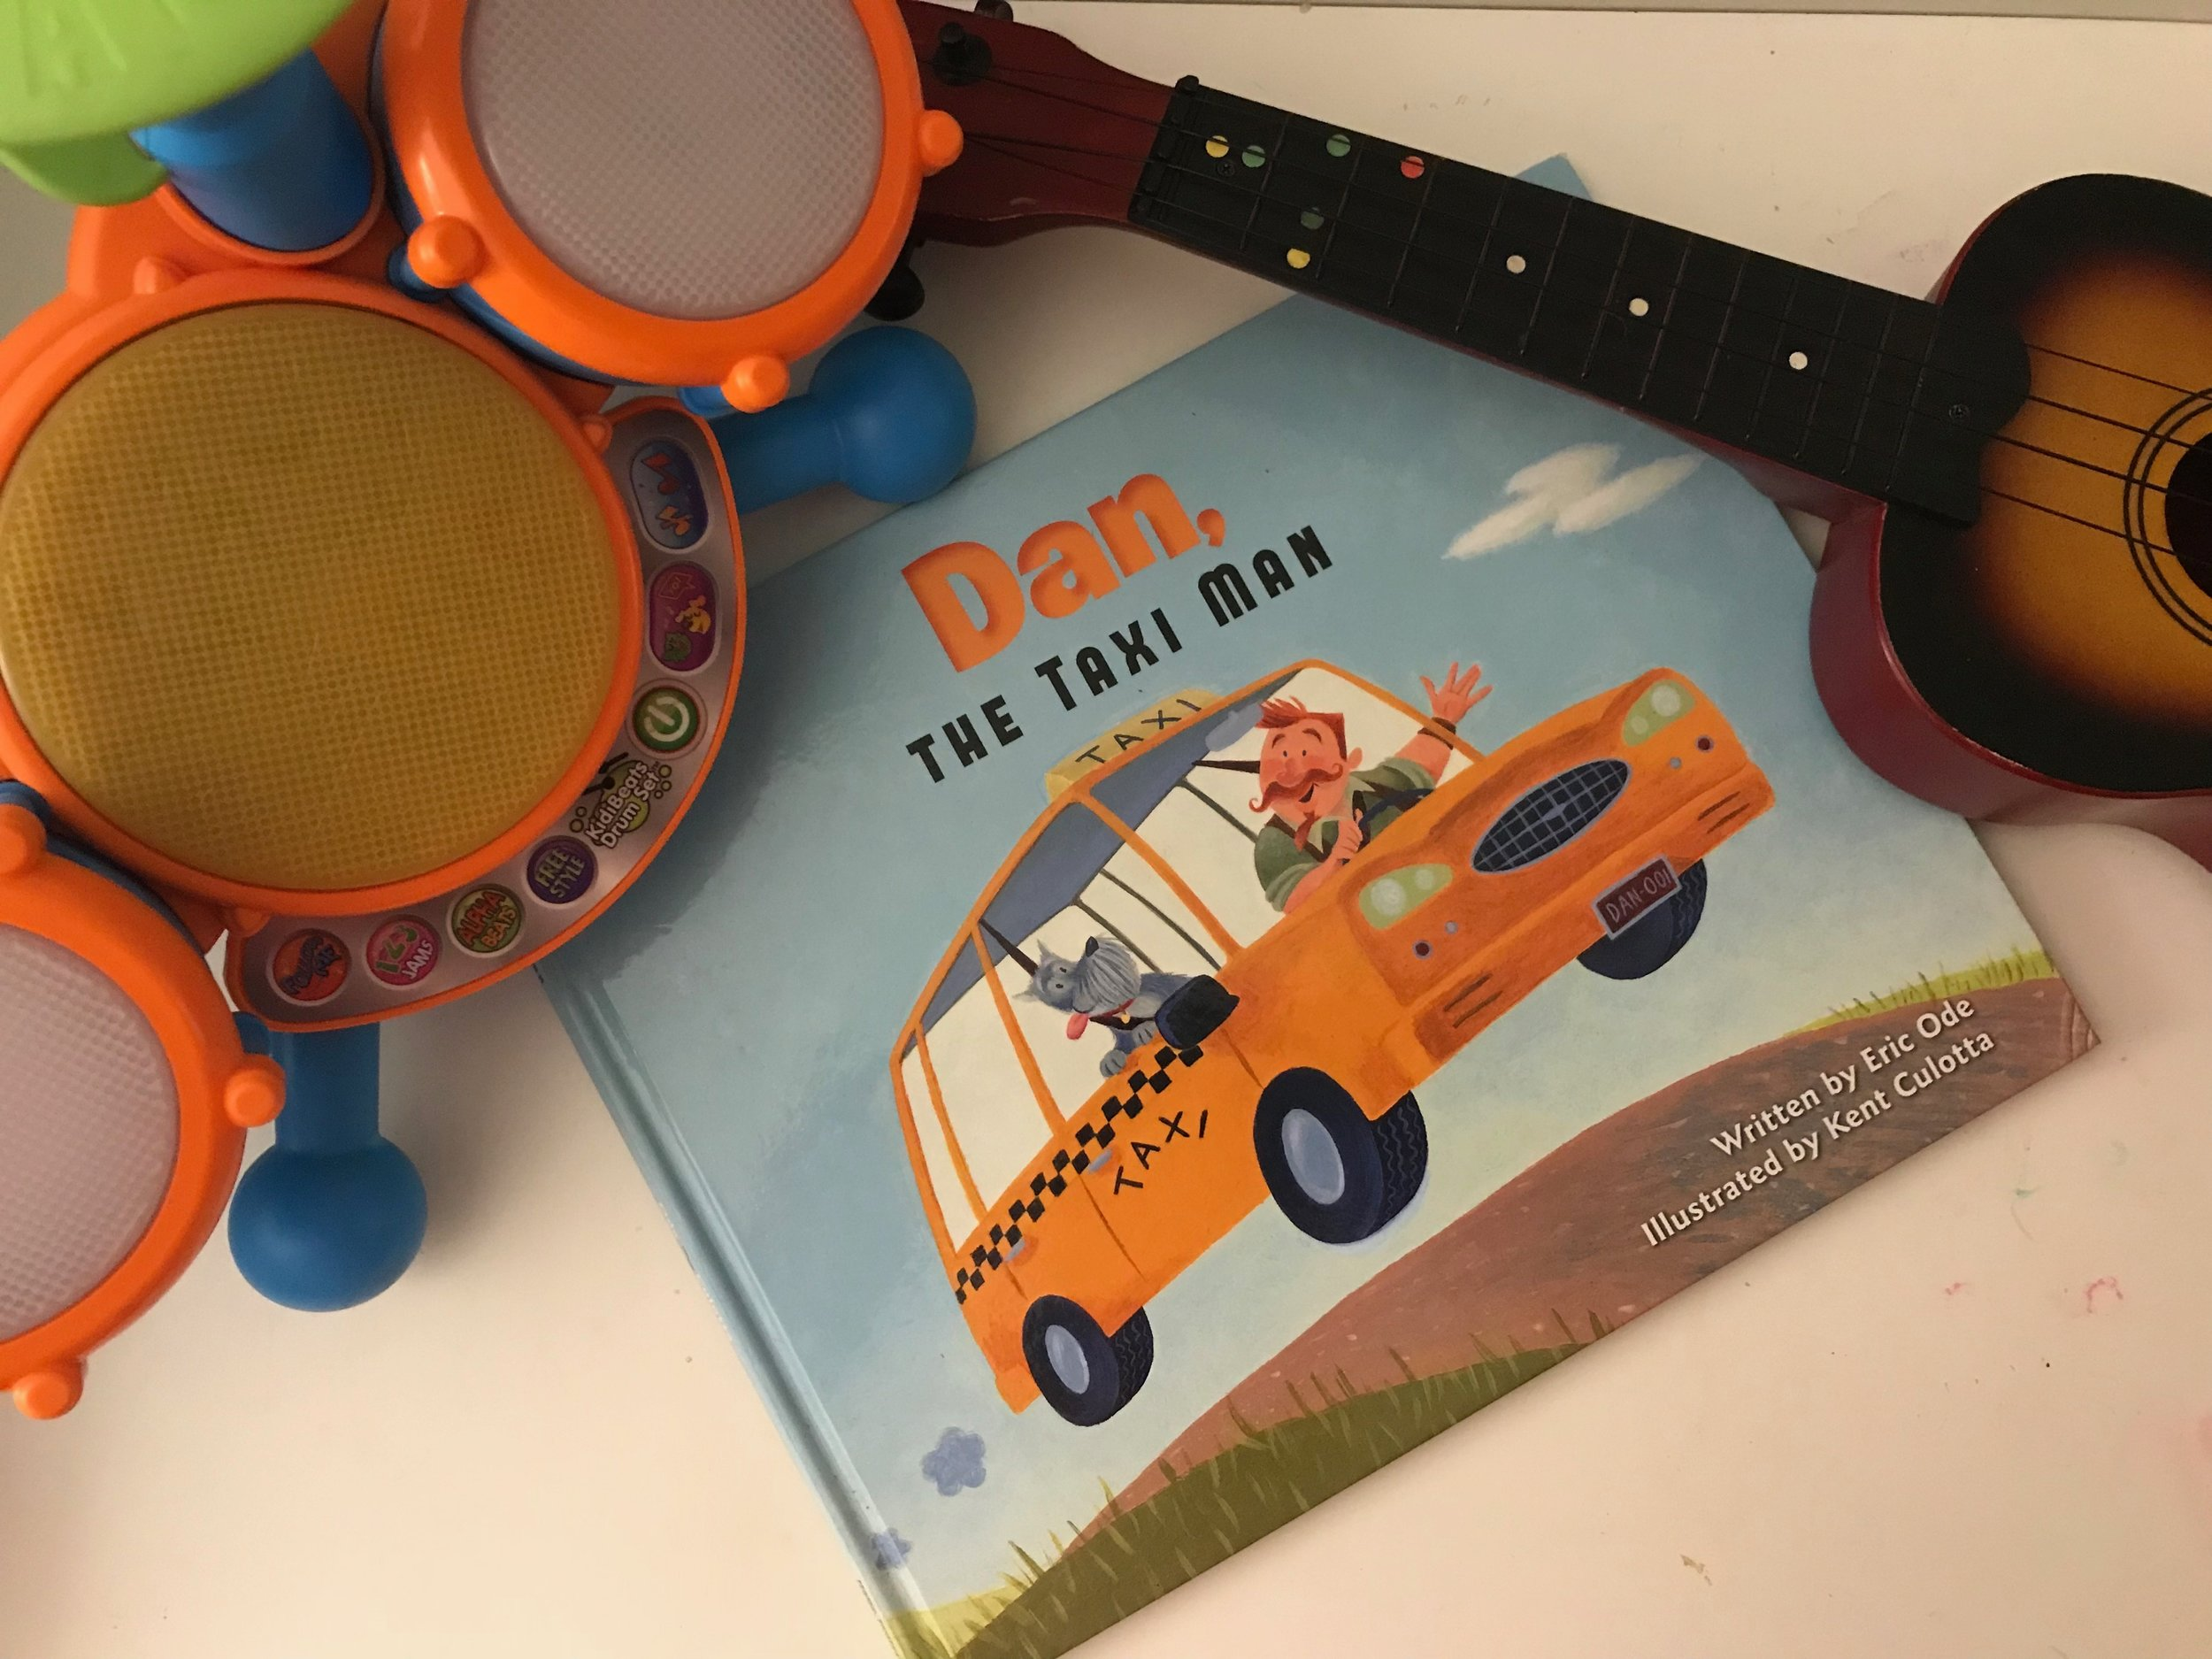 """Dan, Dan the Taxi Man... Going to the show and picking up the band... climb inside while you still can, with Dan 'BEEP, BEEP' The Taxi Man"" So begins this book filled with musical sounds, chants and rhymes your kids will love to sing along with as you read.   After reading (or singing) this book, grab your own musical instruments and make your own band. Dancing in the kitchen, may ensue... But the kids in your life are sure to have fun!     Find Dan the Taxi Man Here"